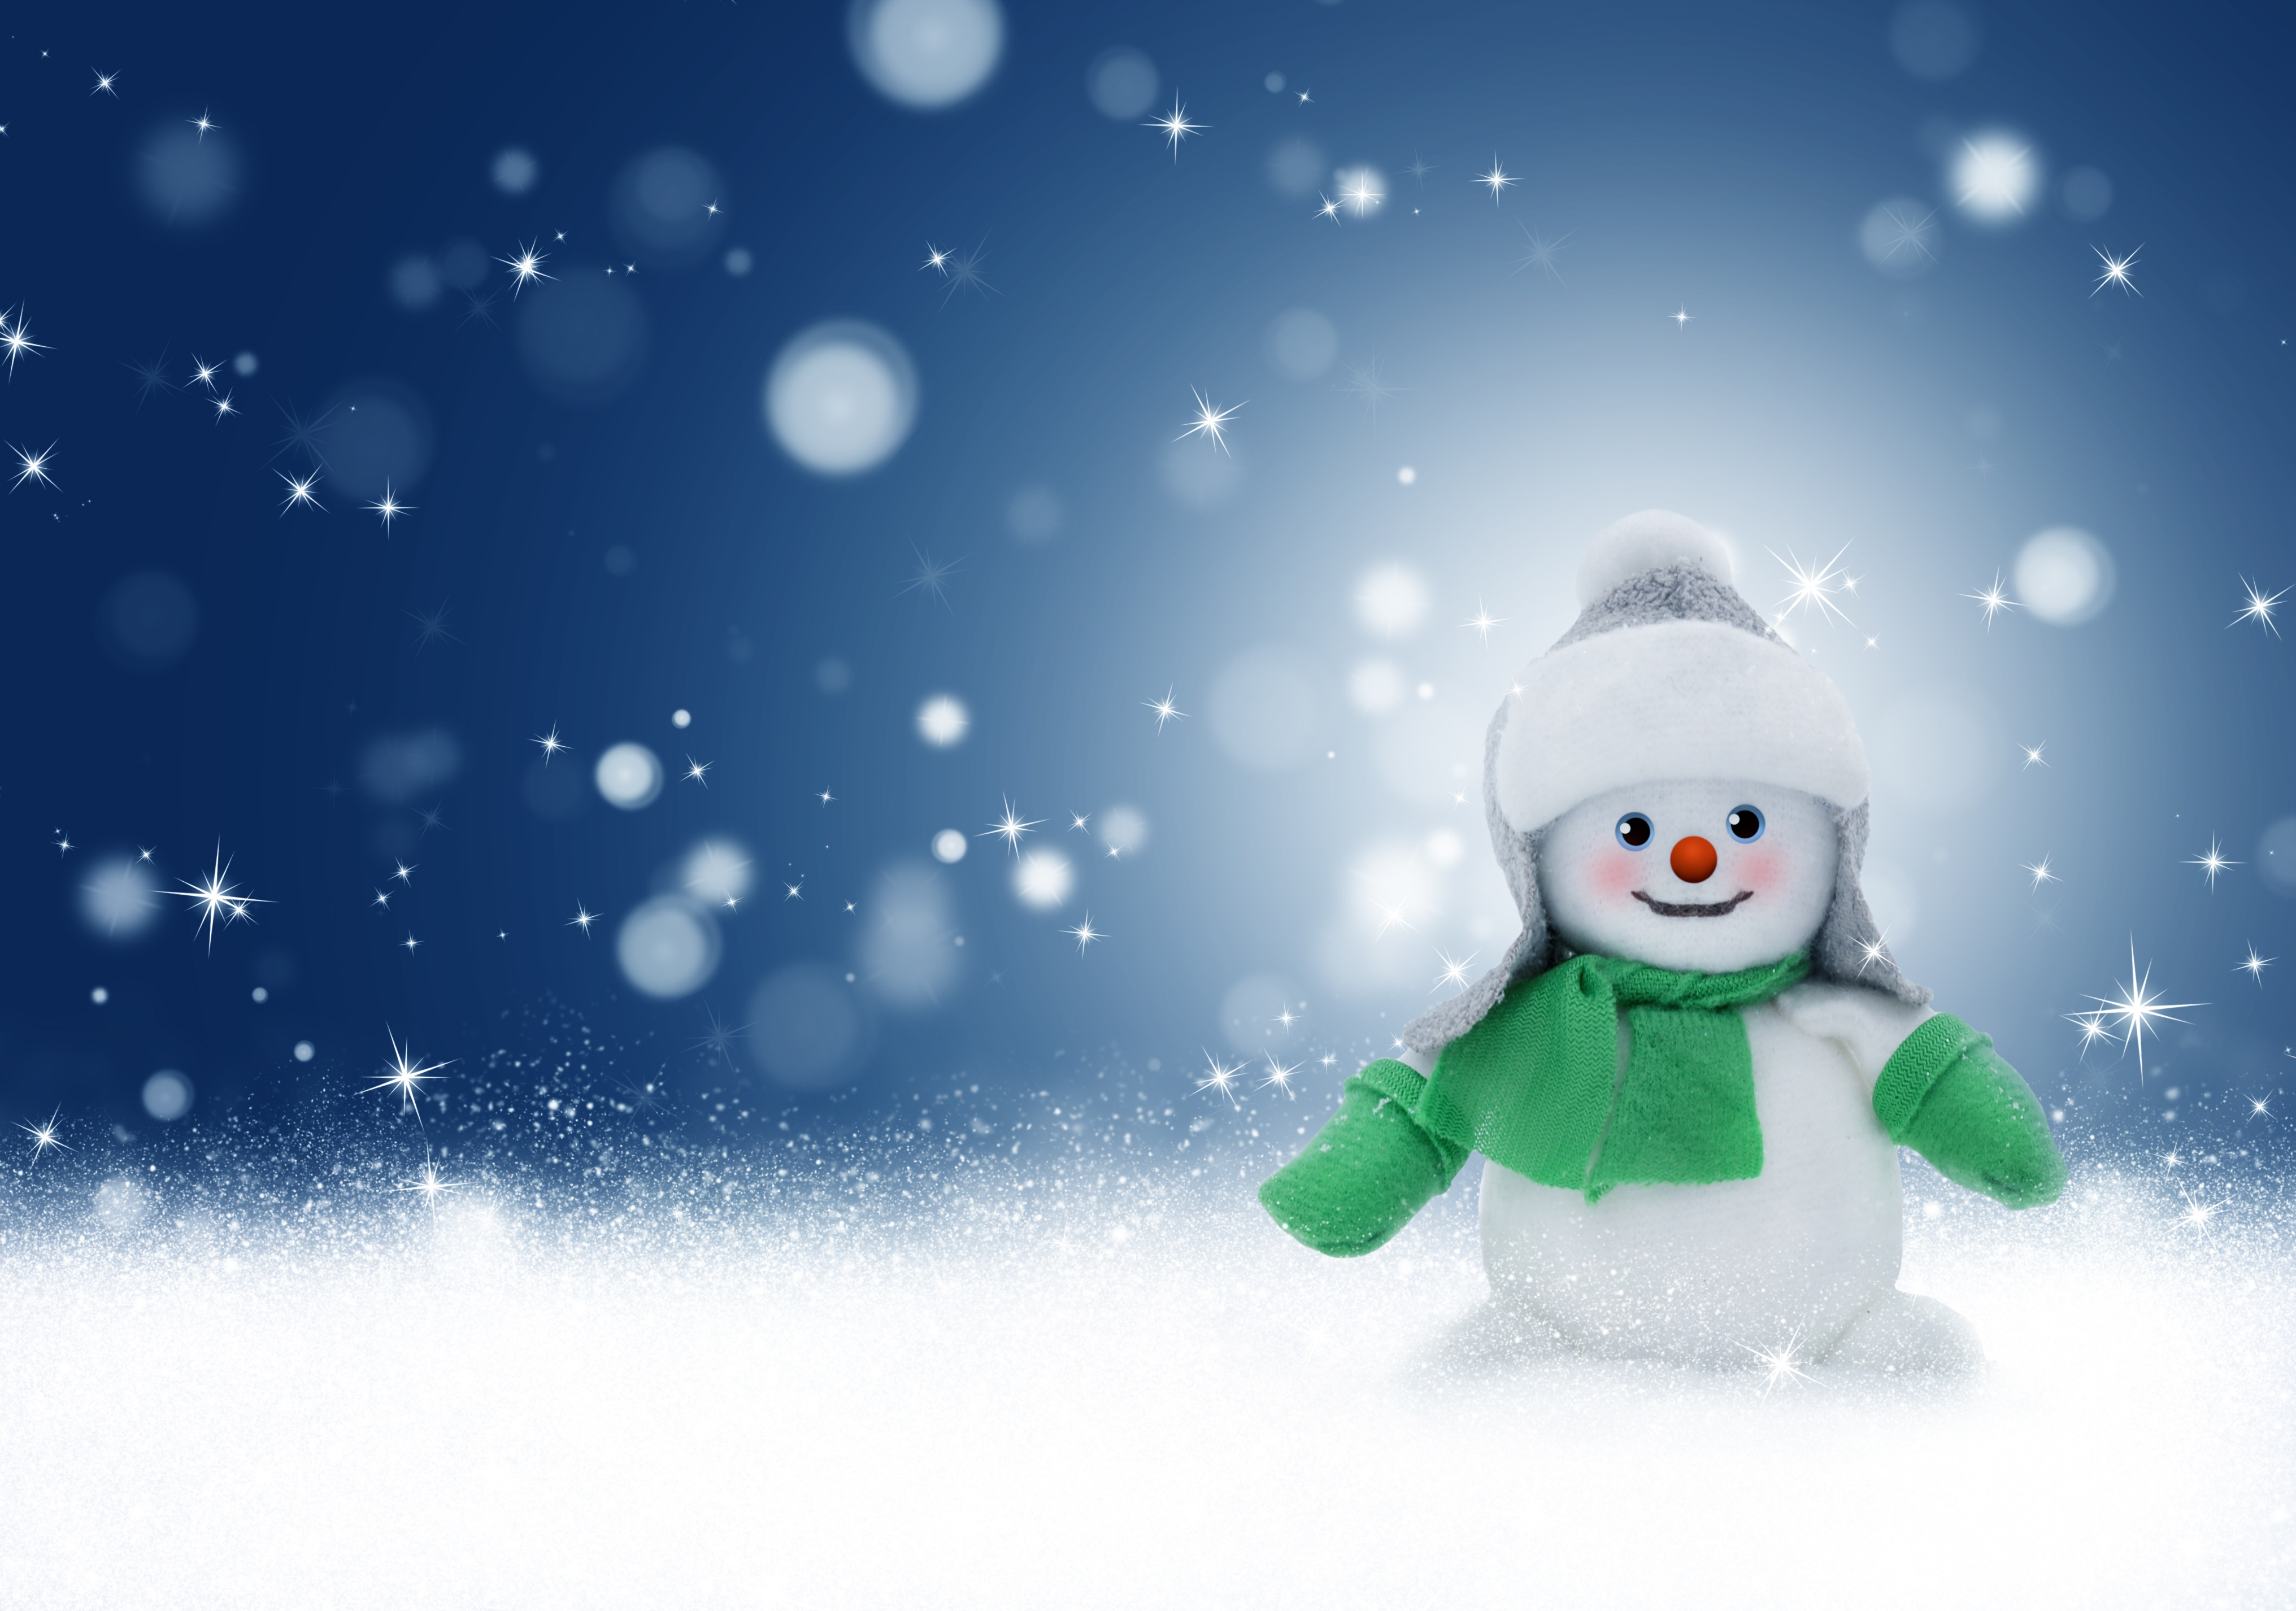 81685 download wallpaper Christmas, Holidays, New Year, Snowman, Glare, Toy, Bokeh, Boquet screensavers and pictures for free